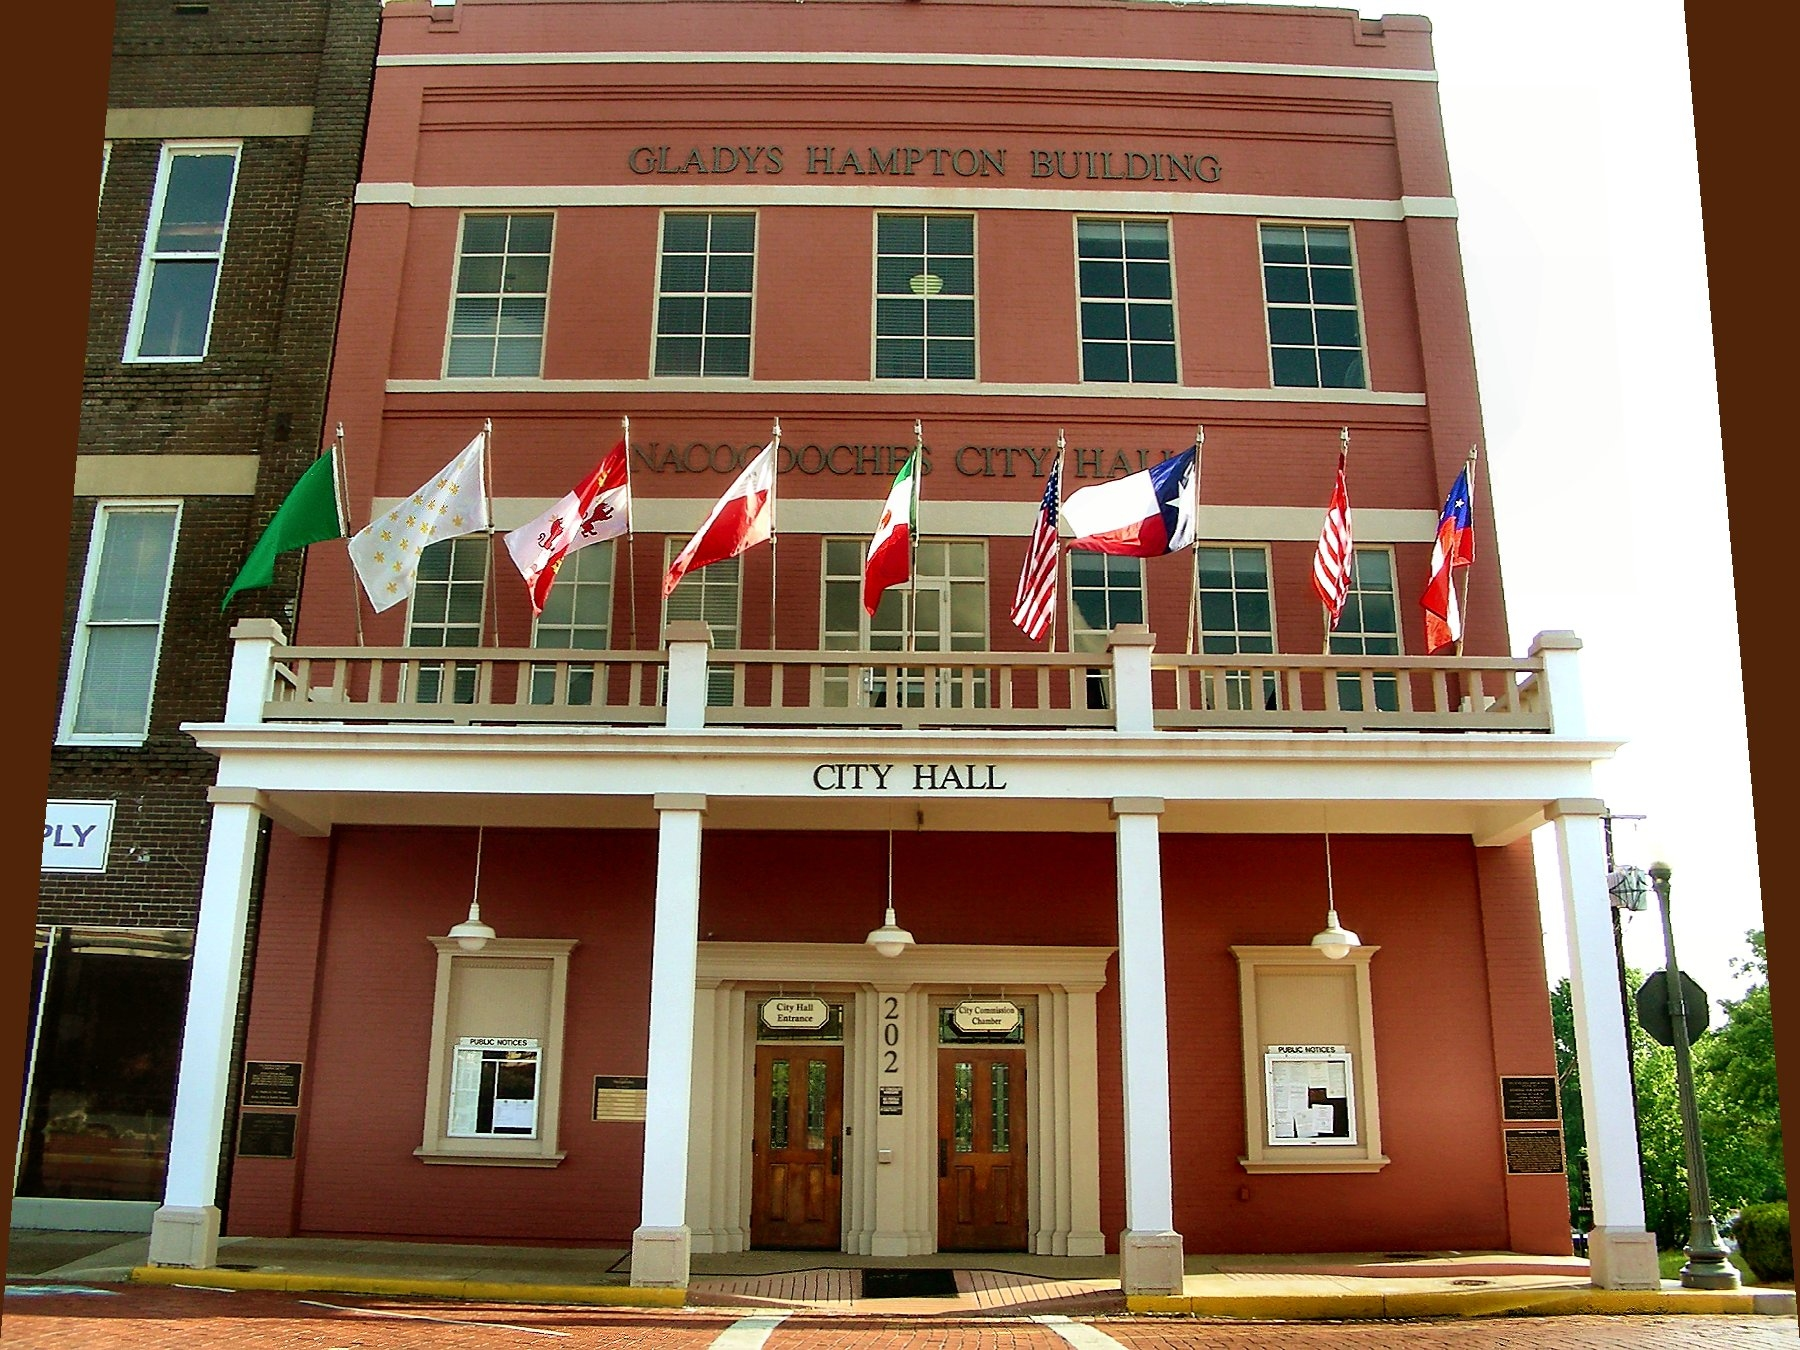 City Hall at 202 Pilar St. in Historic Nacogdoches